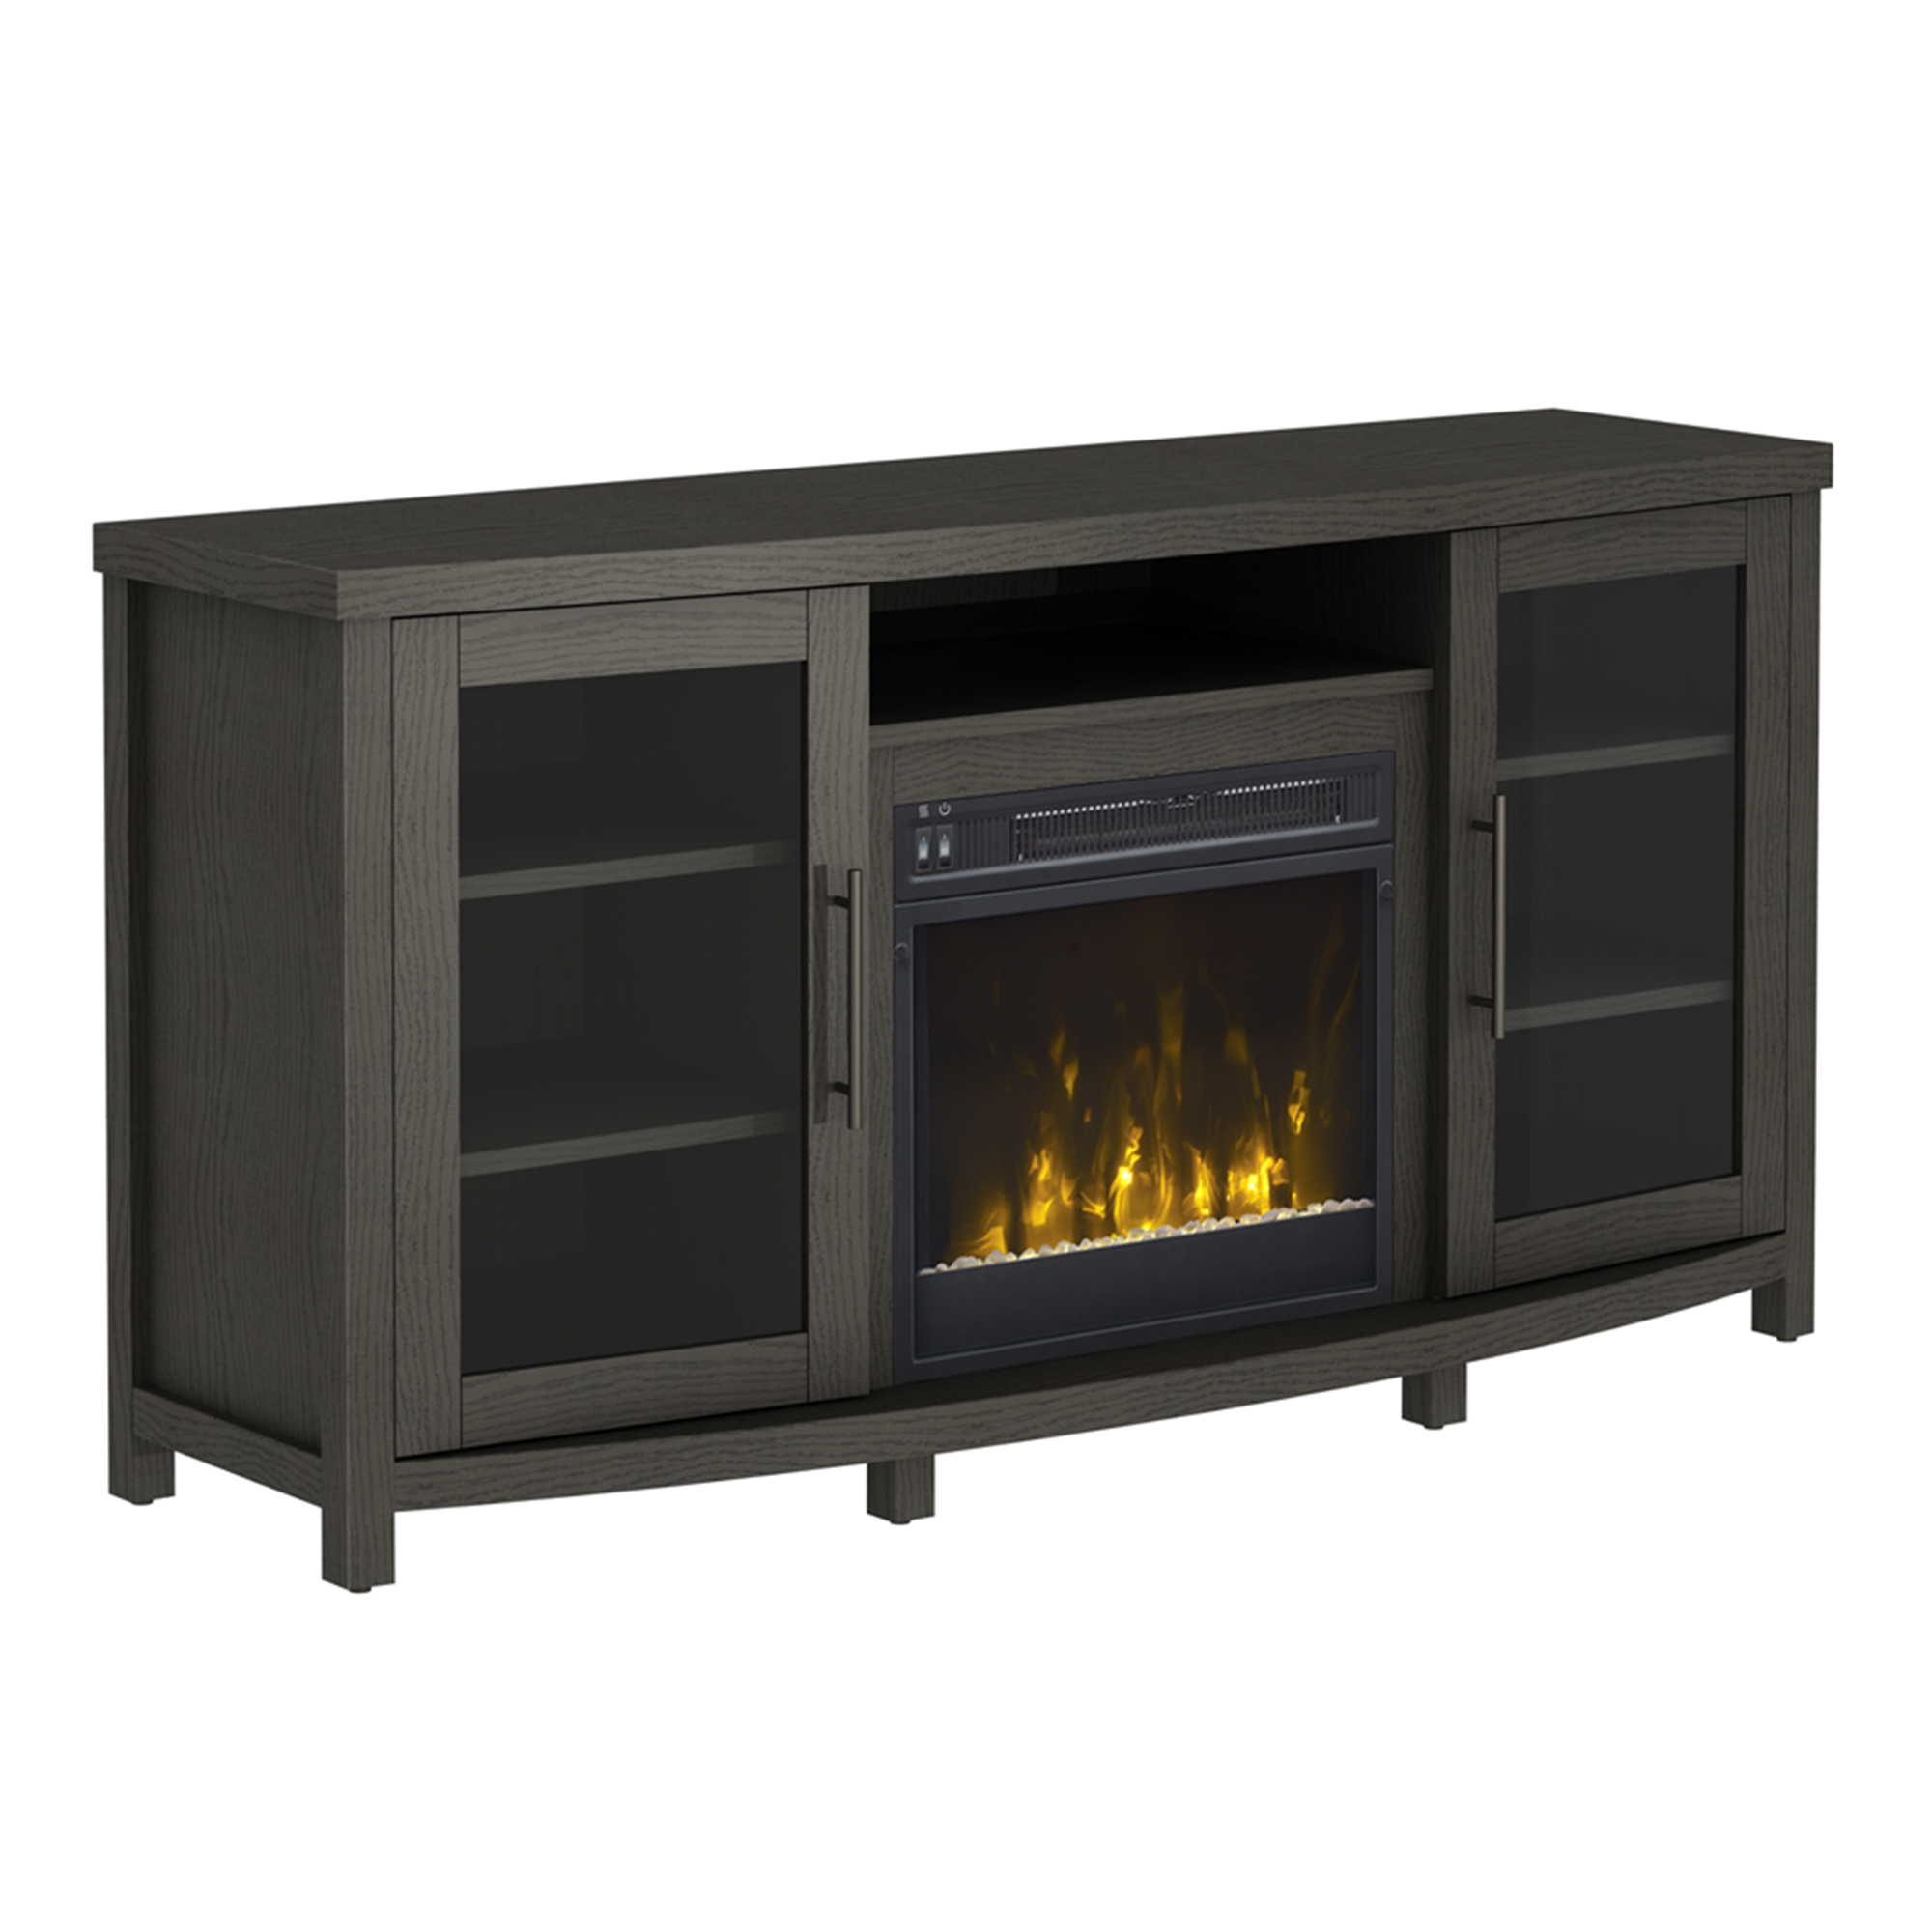 """Rossville Tv Stand For Tvs Up To 60 With Electric Fireplace Pertaining To Margulies Tv Stands For Tvs Up To 60"""" (View 7 of 20)"""